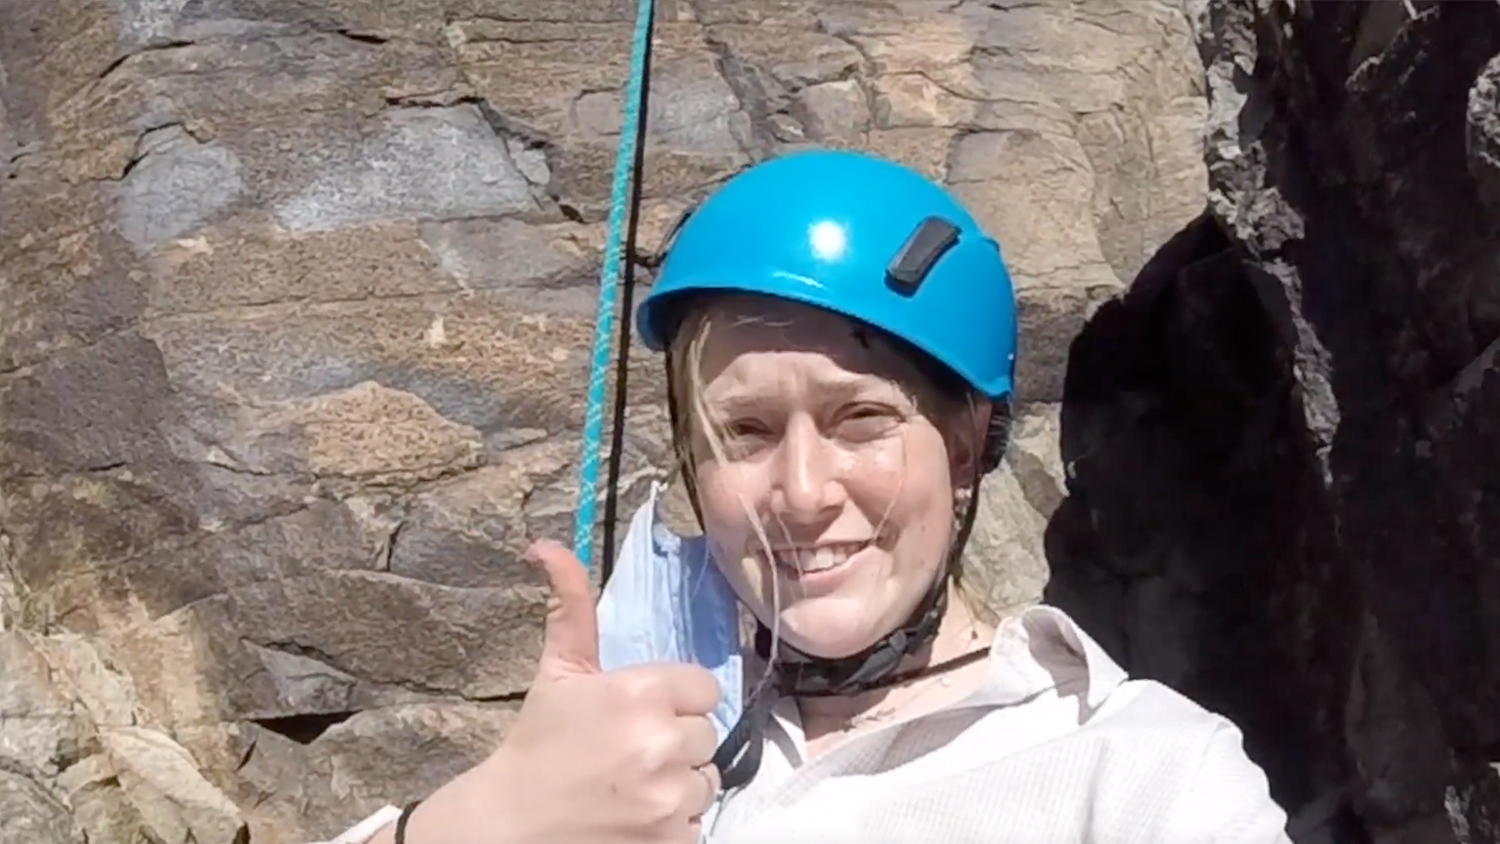 Massey Stichter wearing a teal helmet and making a thumbs up sign while rock climbing